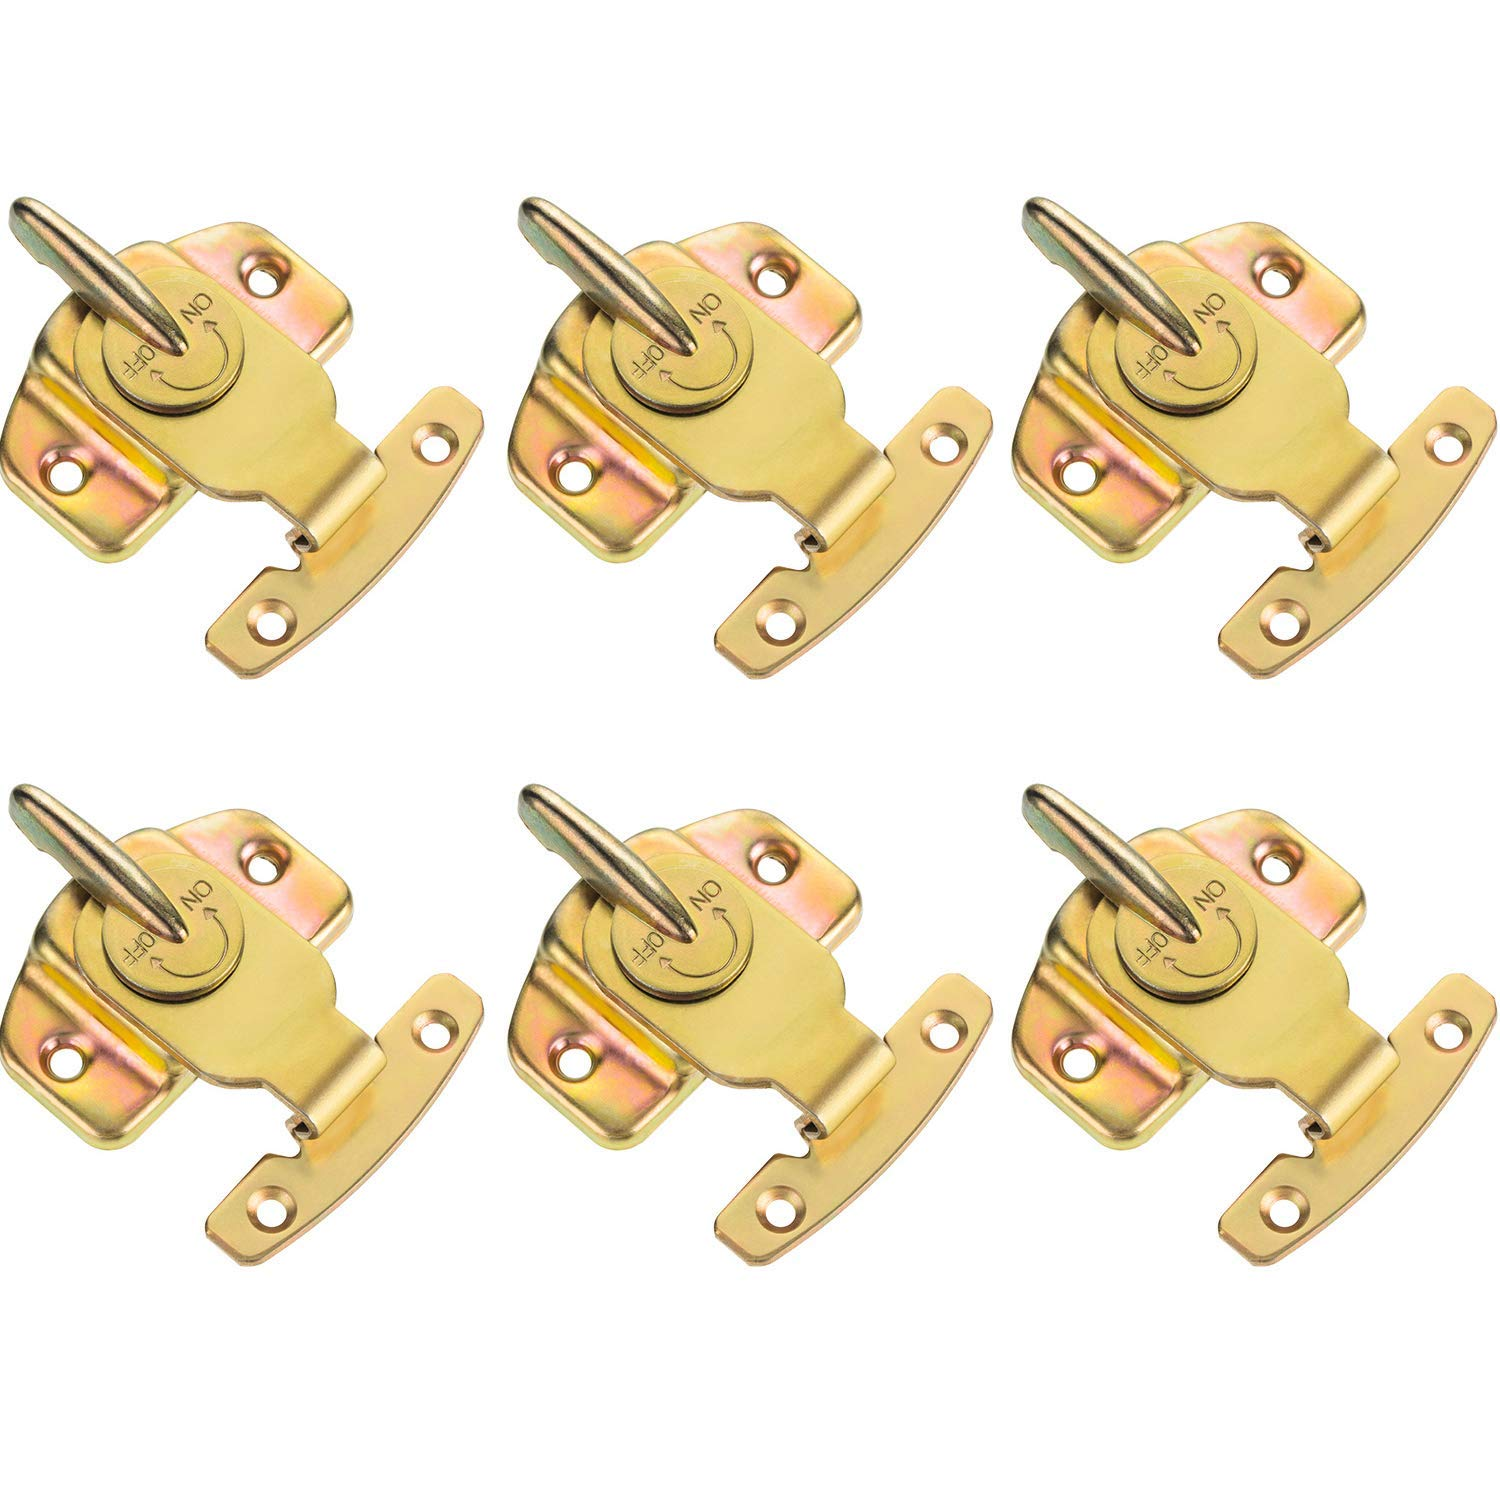 6 Pack Metal Plated Table Locks Dining Training Table Buckles Connectors Hardware Accessories